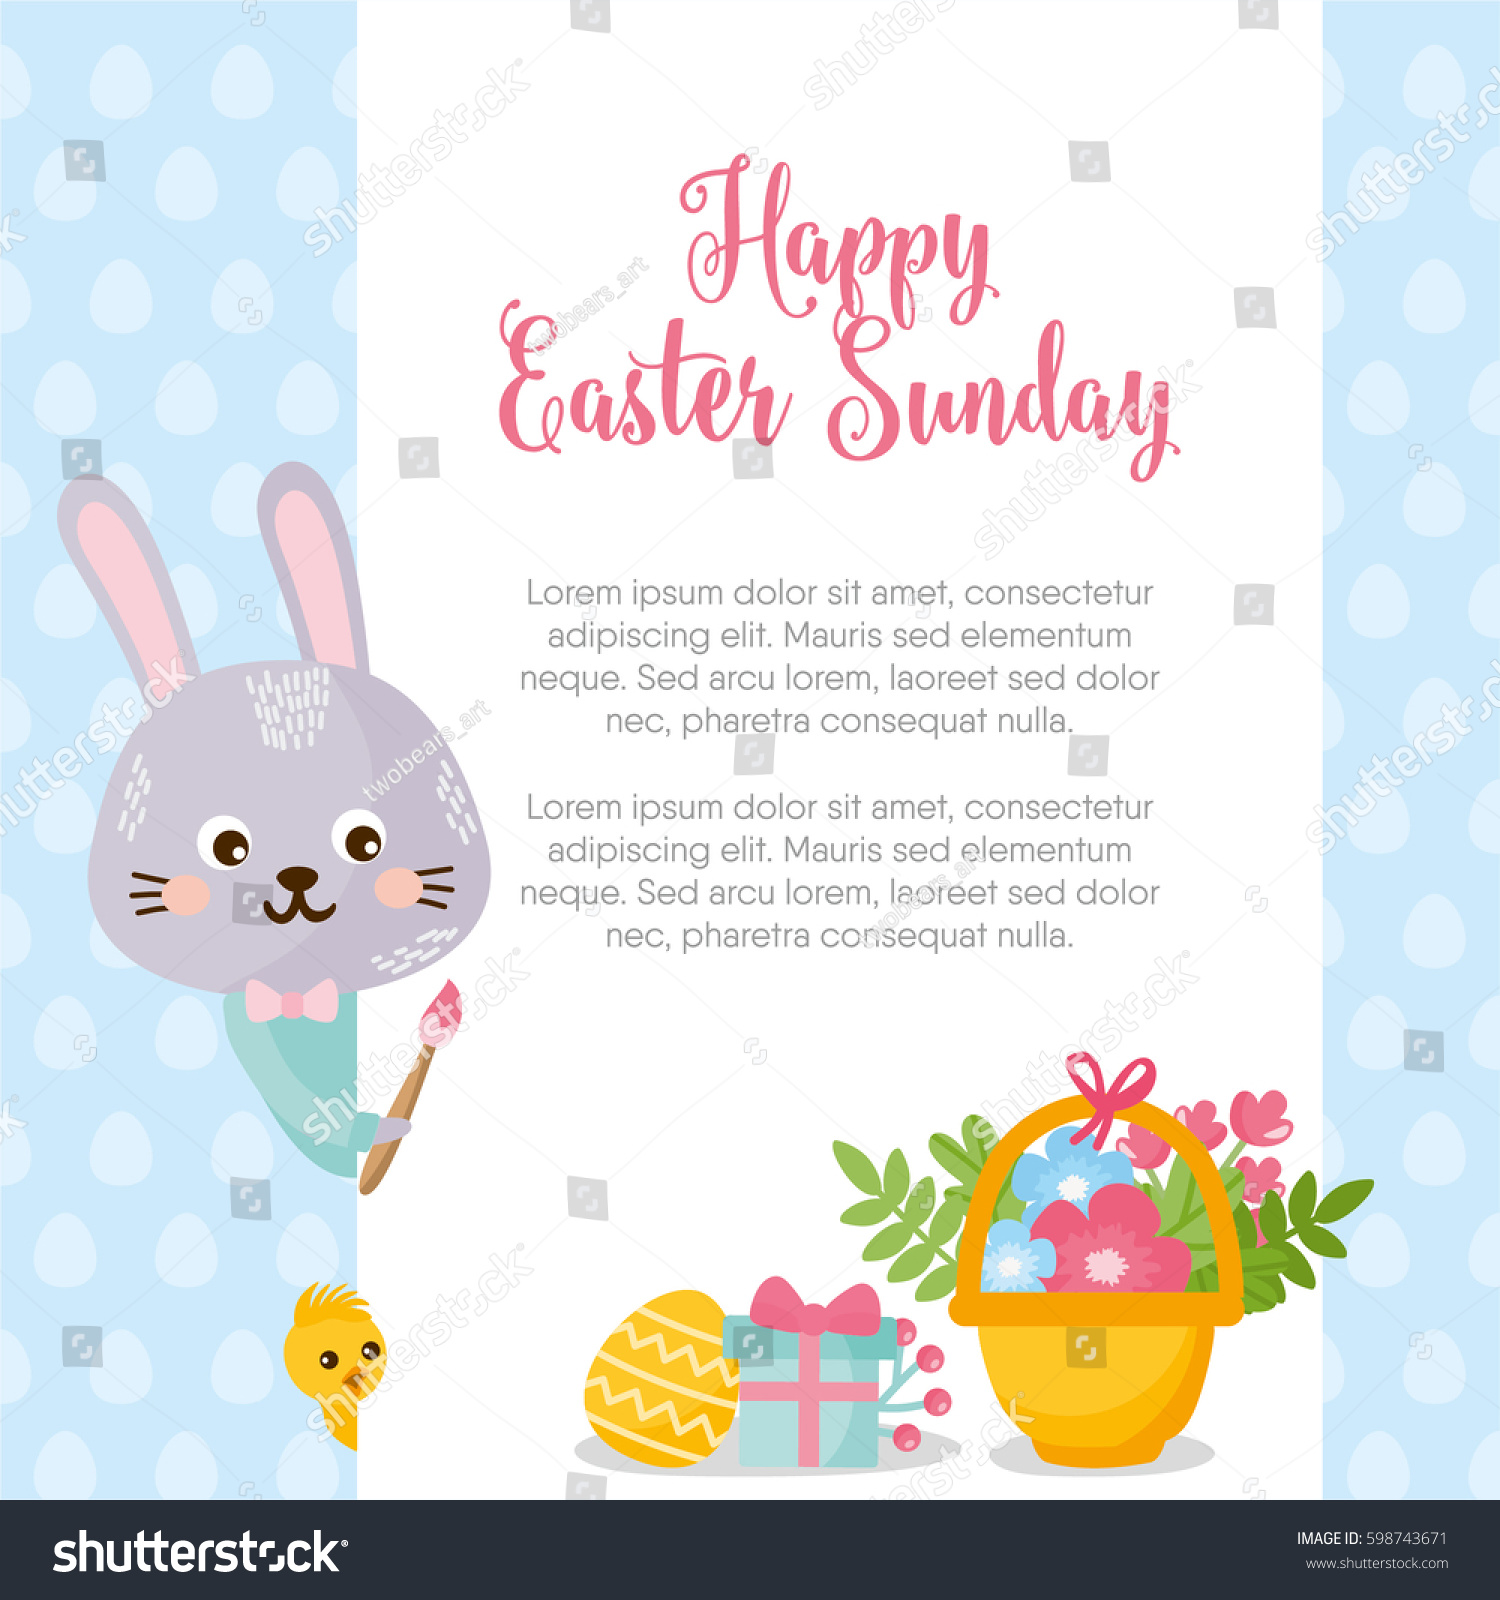 Happy Easter Sunday Card Template Illustration Stock Vector Royalty